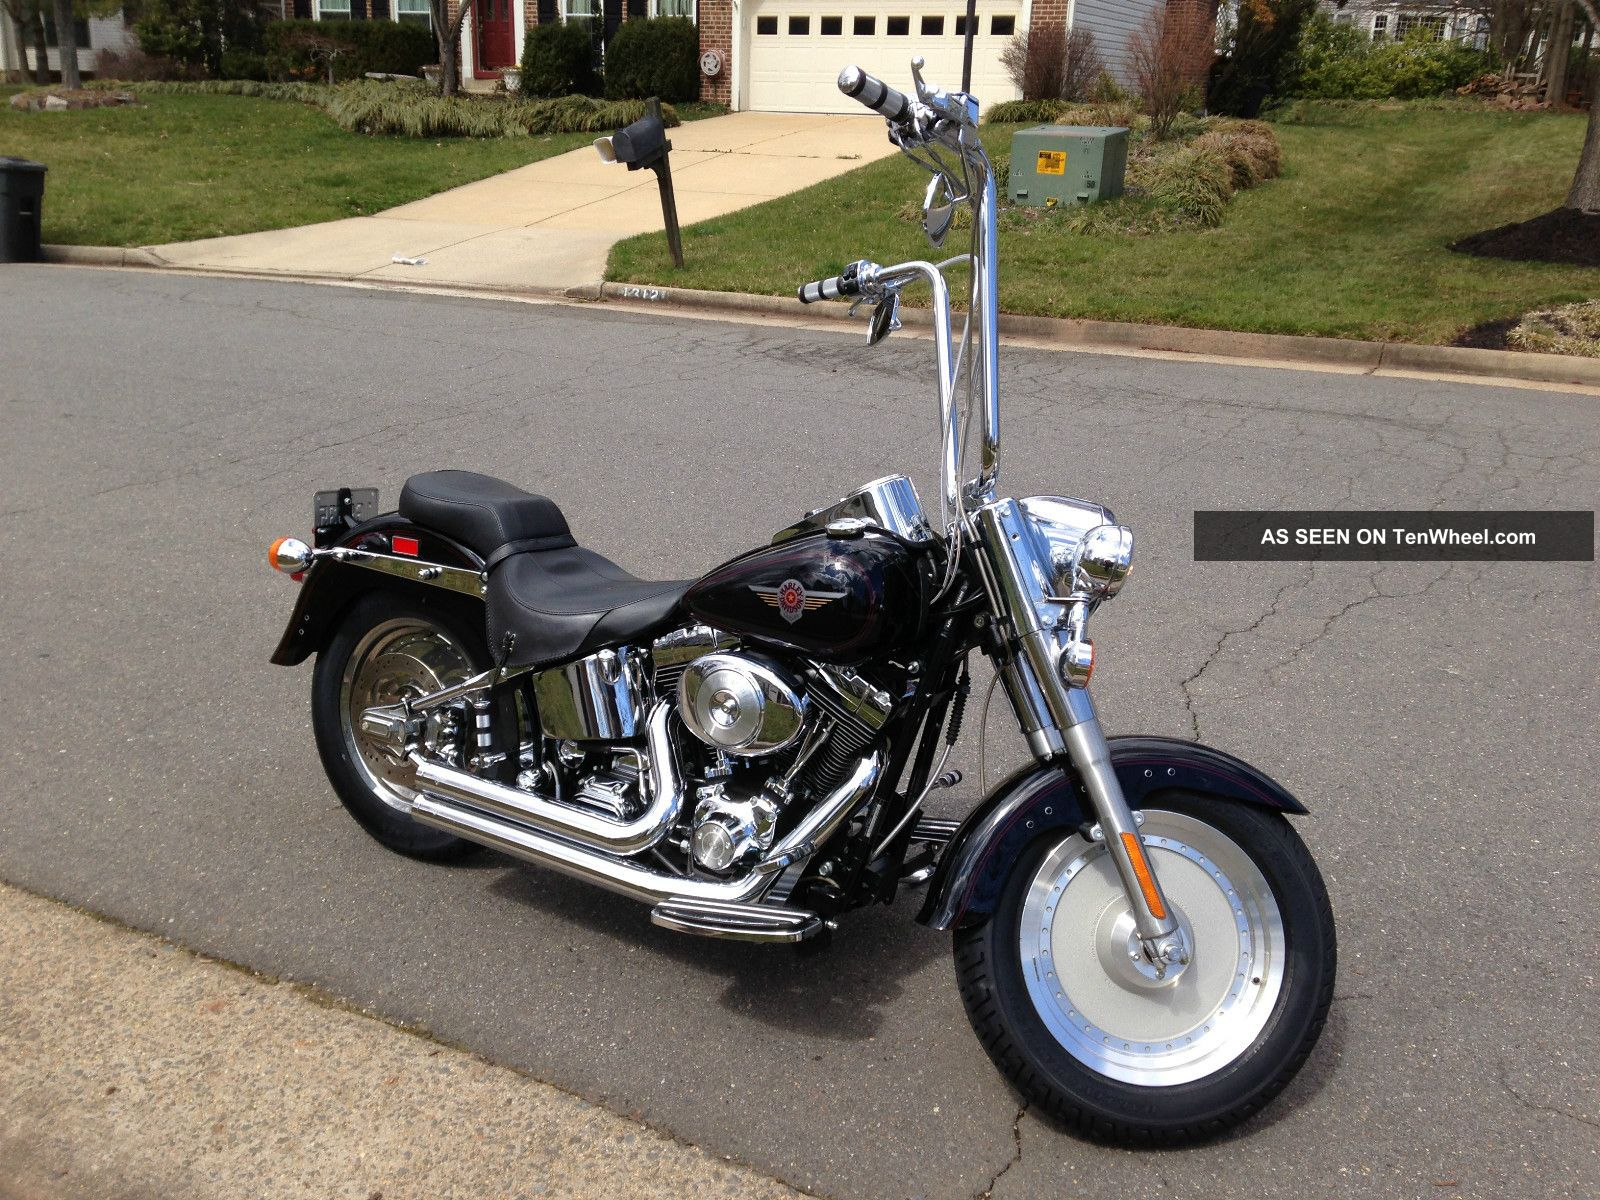 2000 Black Harley Davidson Fatboy Softail photo